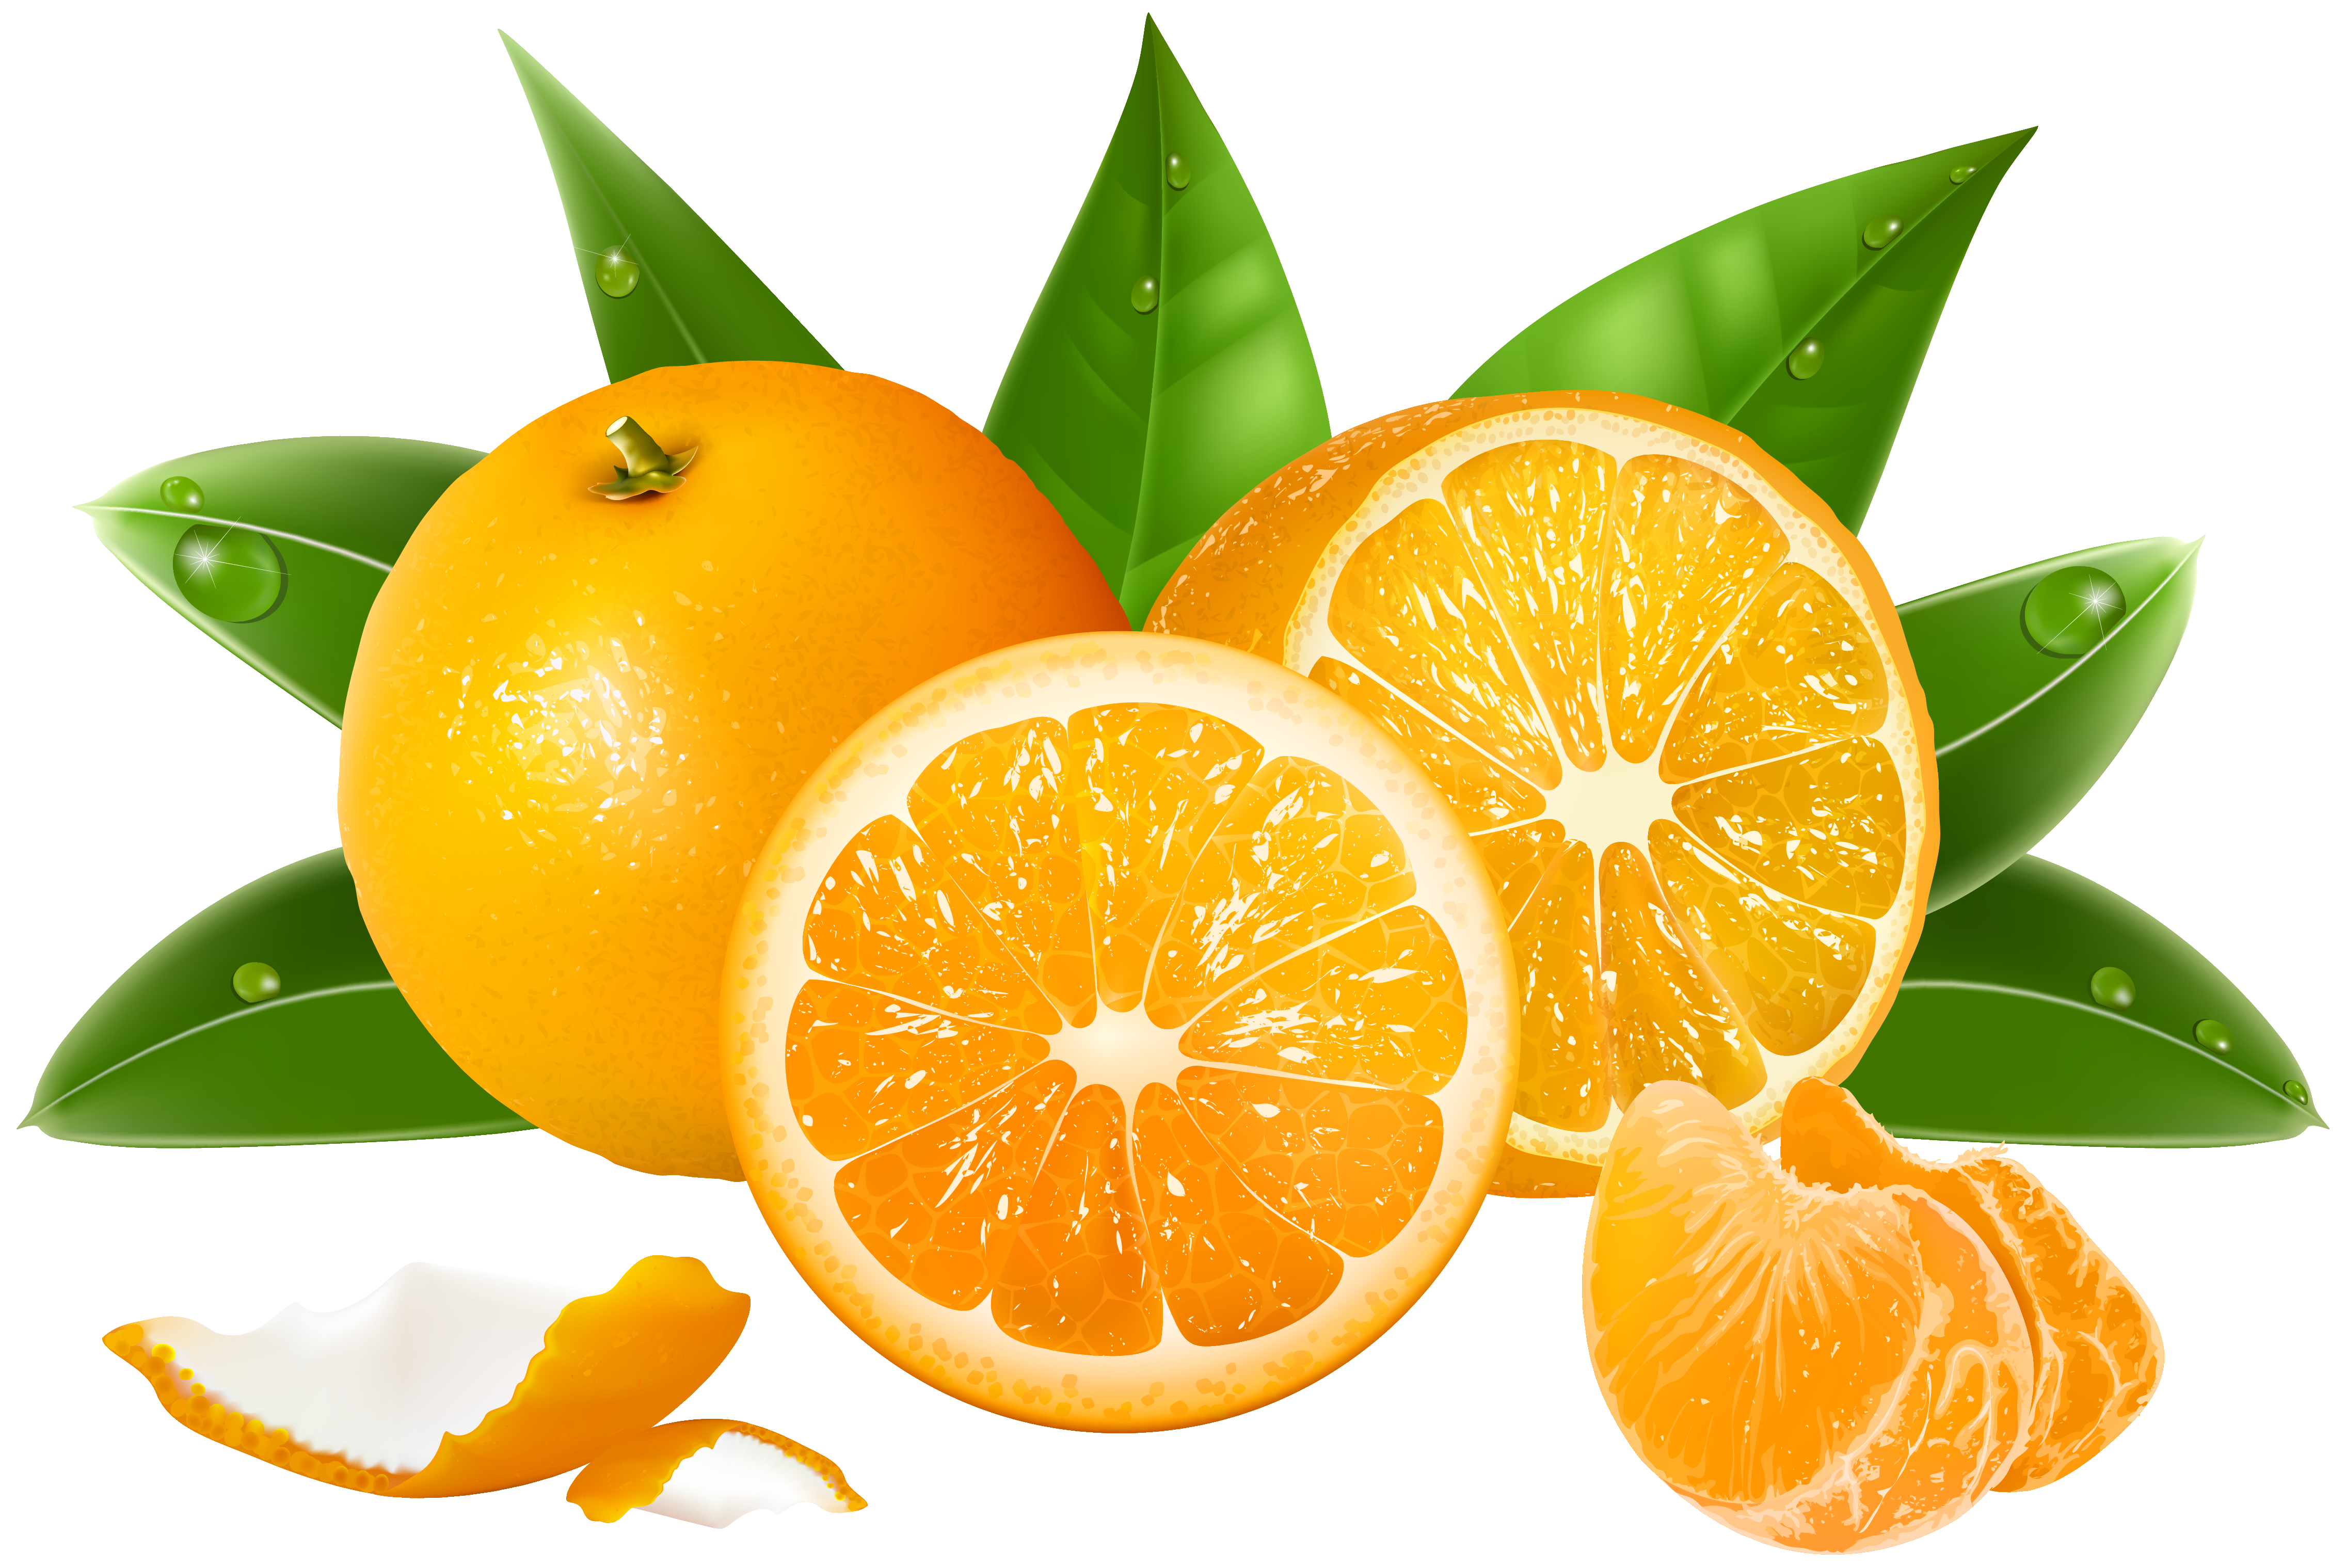 clipart Png image gallery yopriceville. Oranges clipart